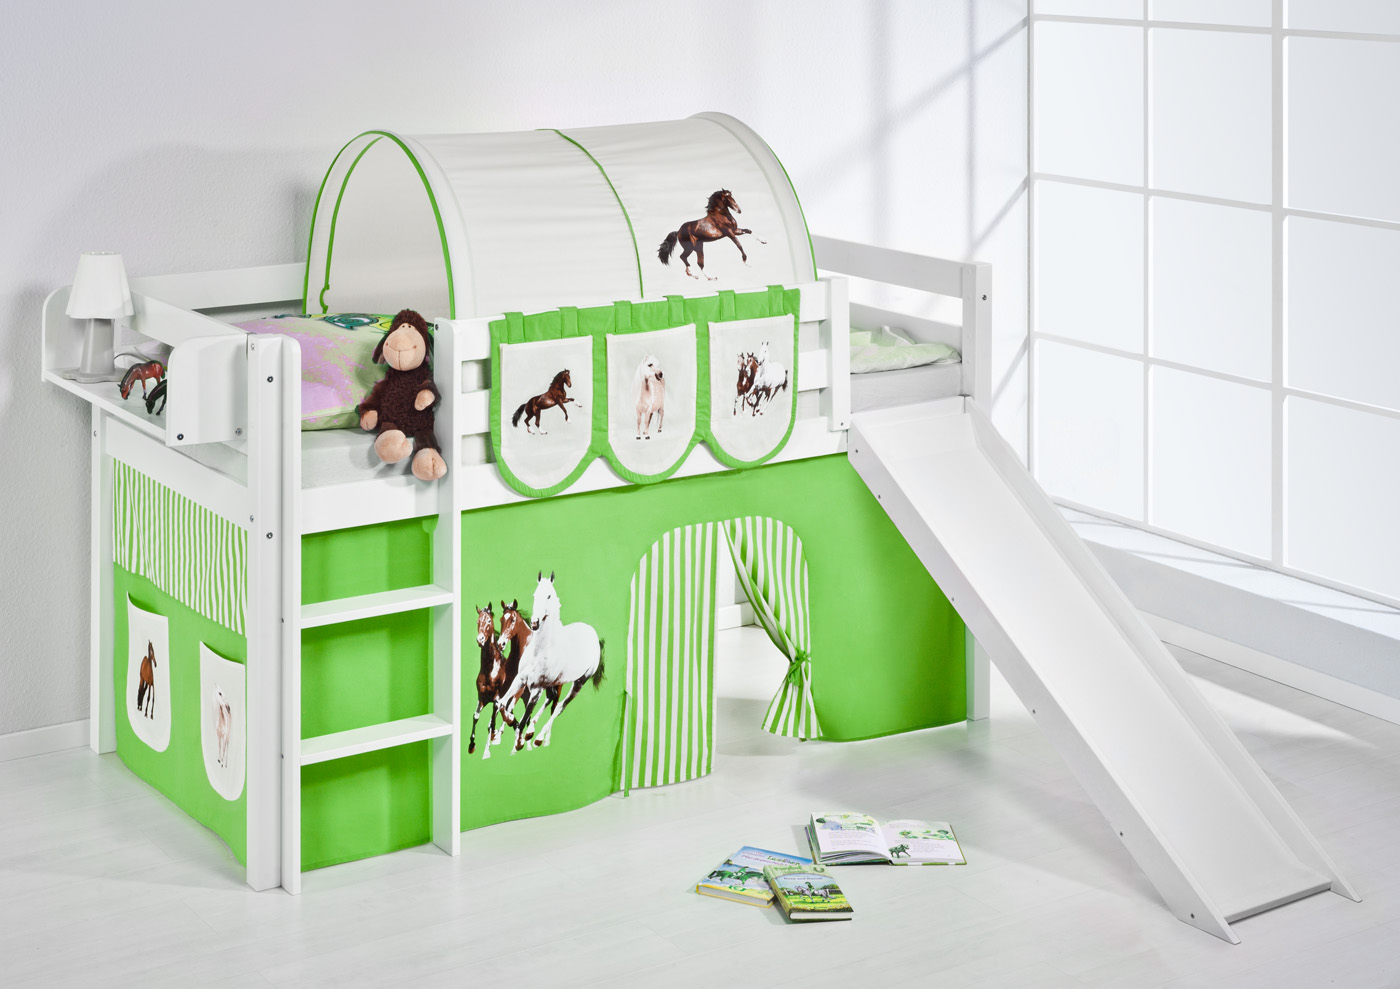 spielbett hochbett kinderbett kinder bett jelle mit rutsche vorhang ebay. Black Bedroom Furniture Sets. Home Design Ideas